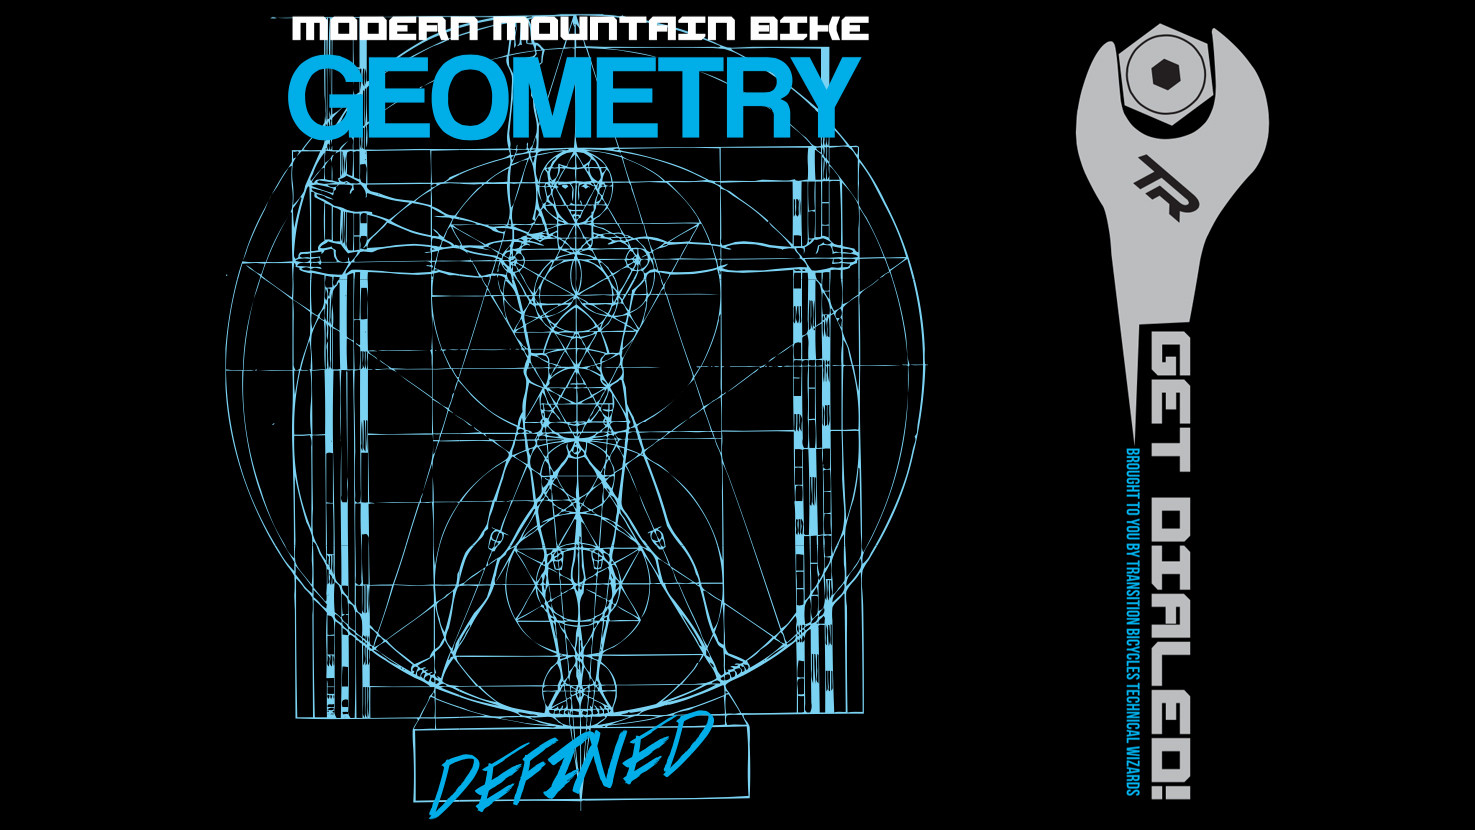 Modern Mountain Bike Geometry Defined - Transition Explains ...